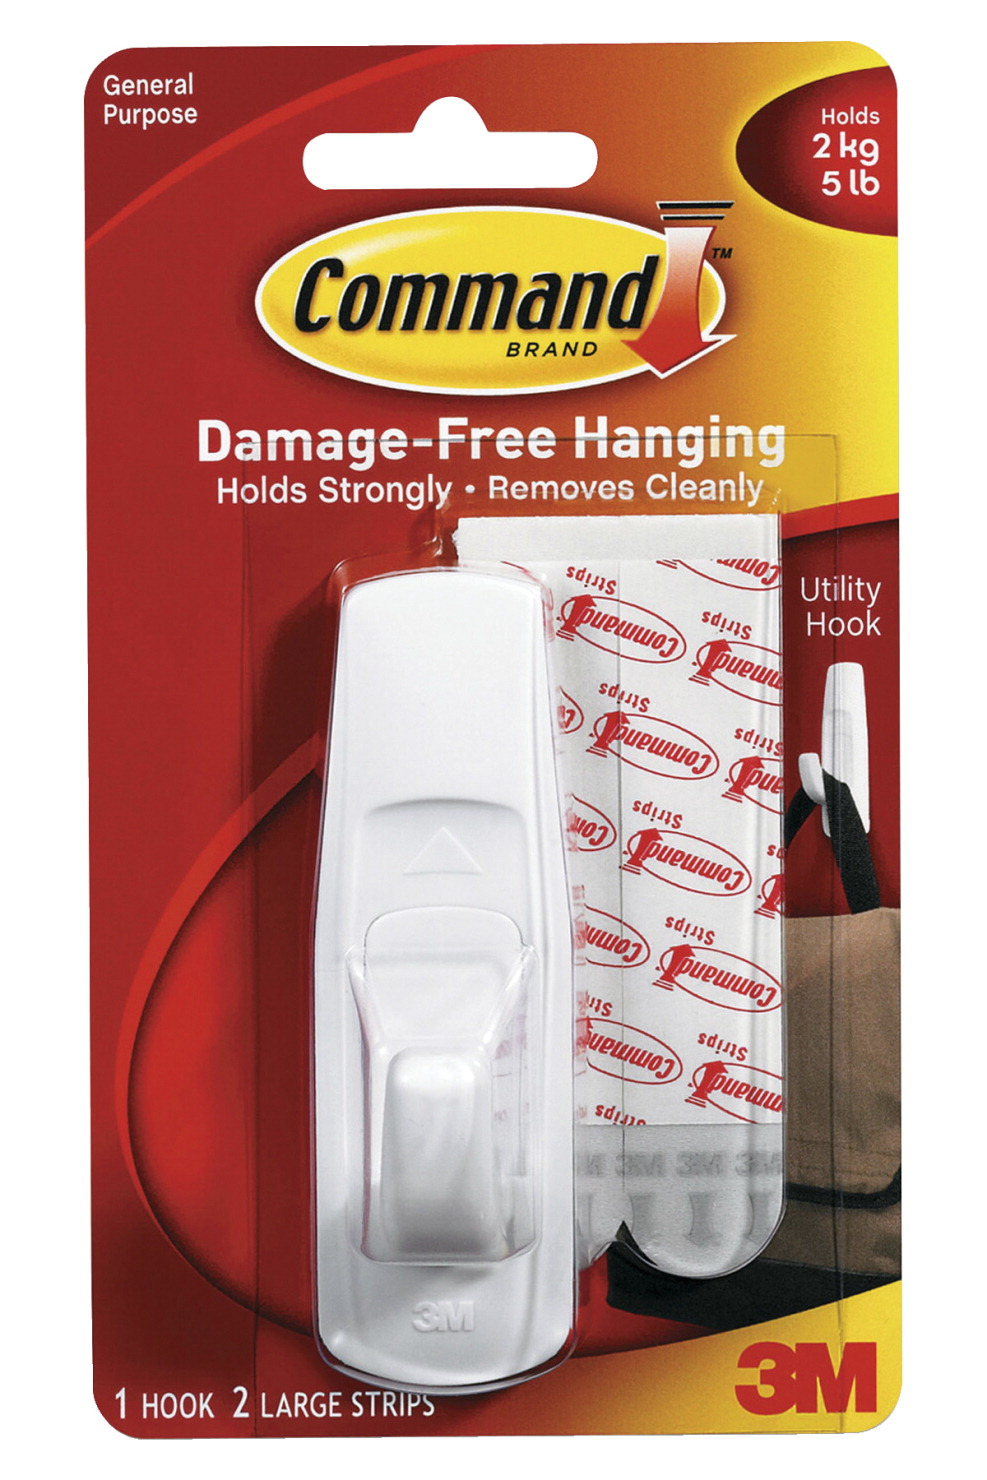 Command Reusable Utility Hook with Removable Adhesive Strips, Large, 5 lb Capacity